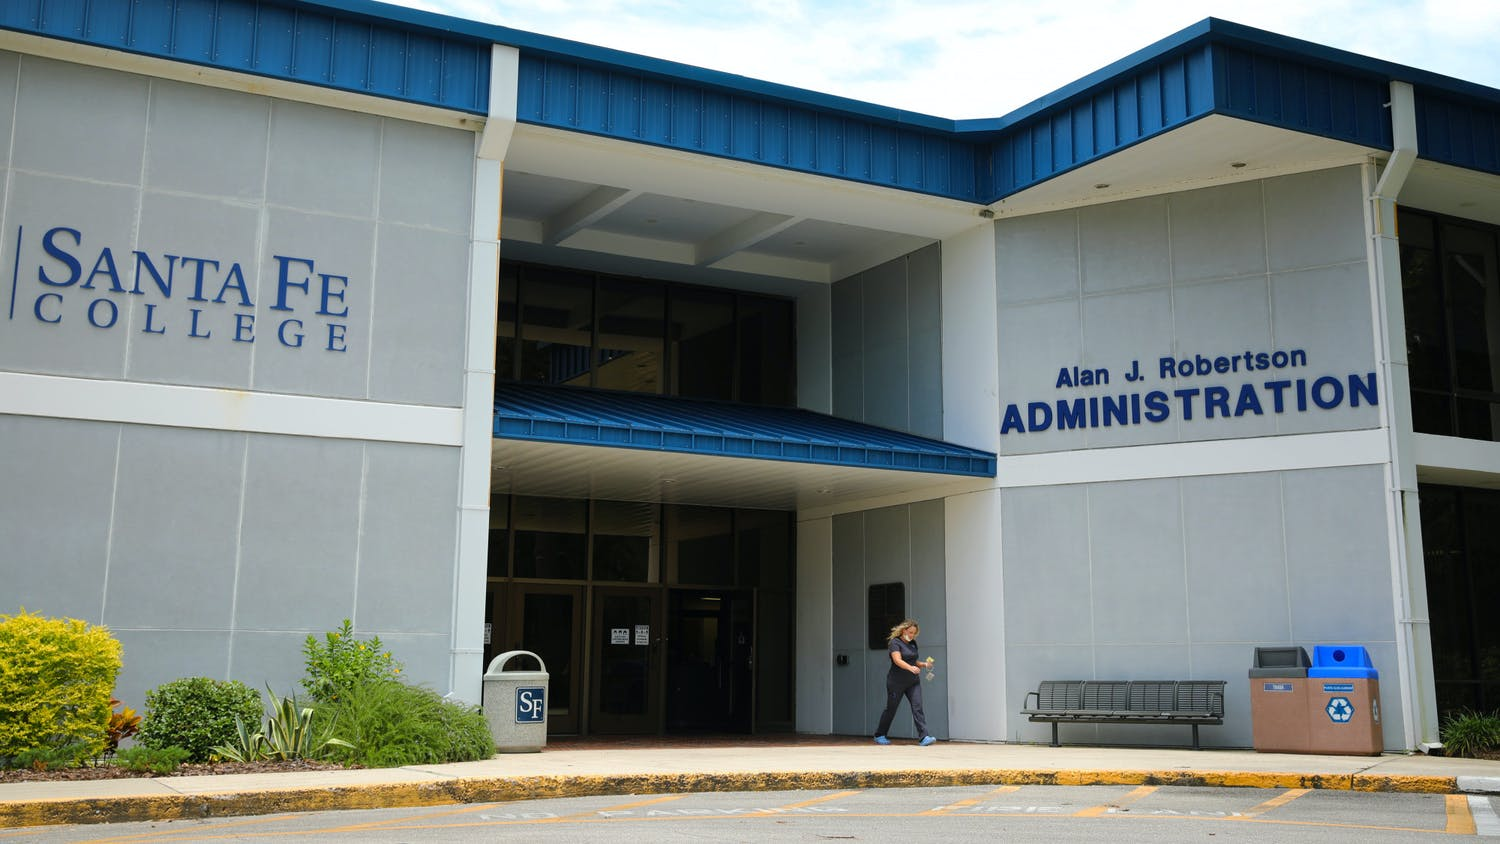 Cristie Anderson, 38, a nursing student at Santa Fe College, passes by the Alan J. Robertson Administration building on Friday, June 18, 2021.